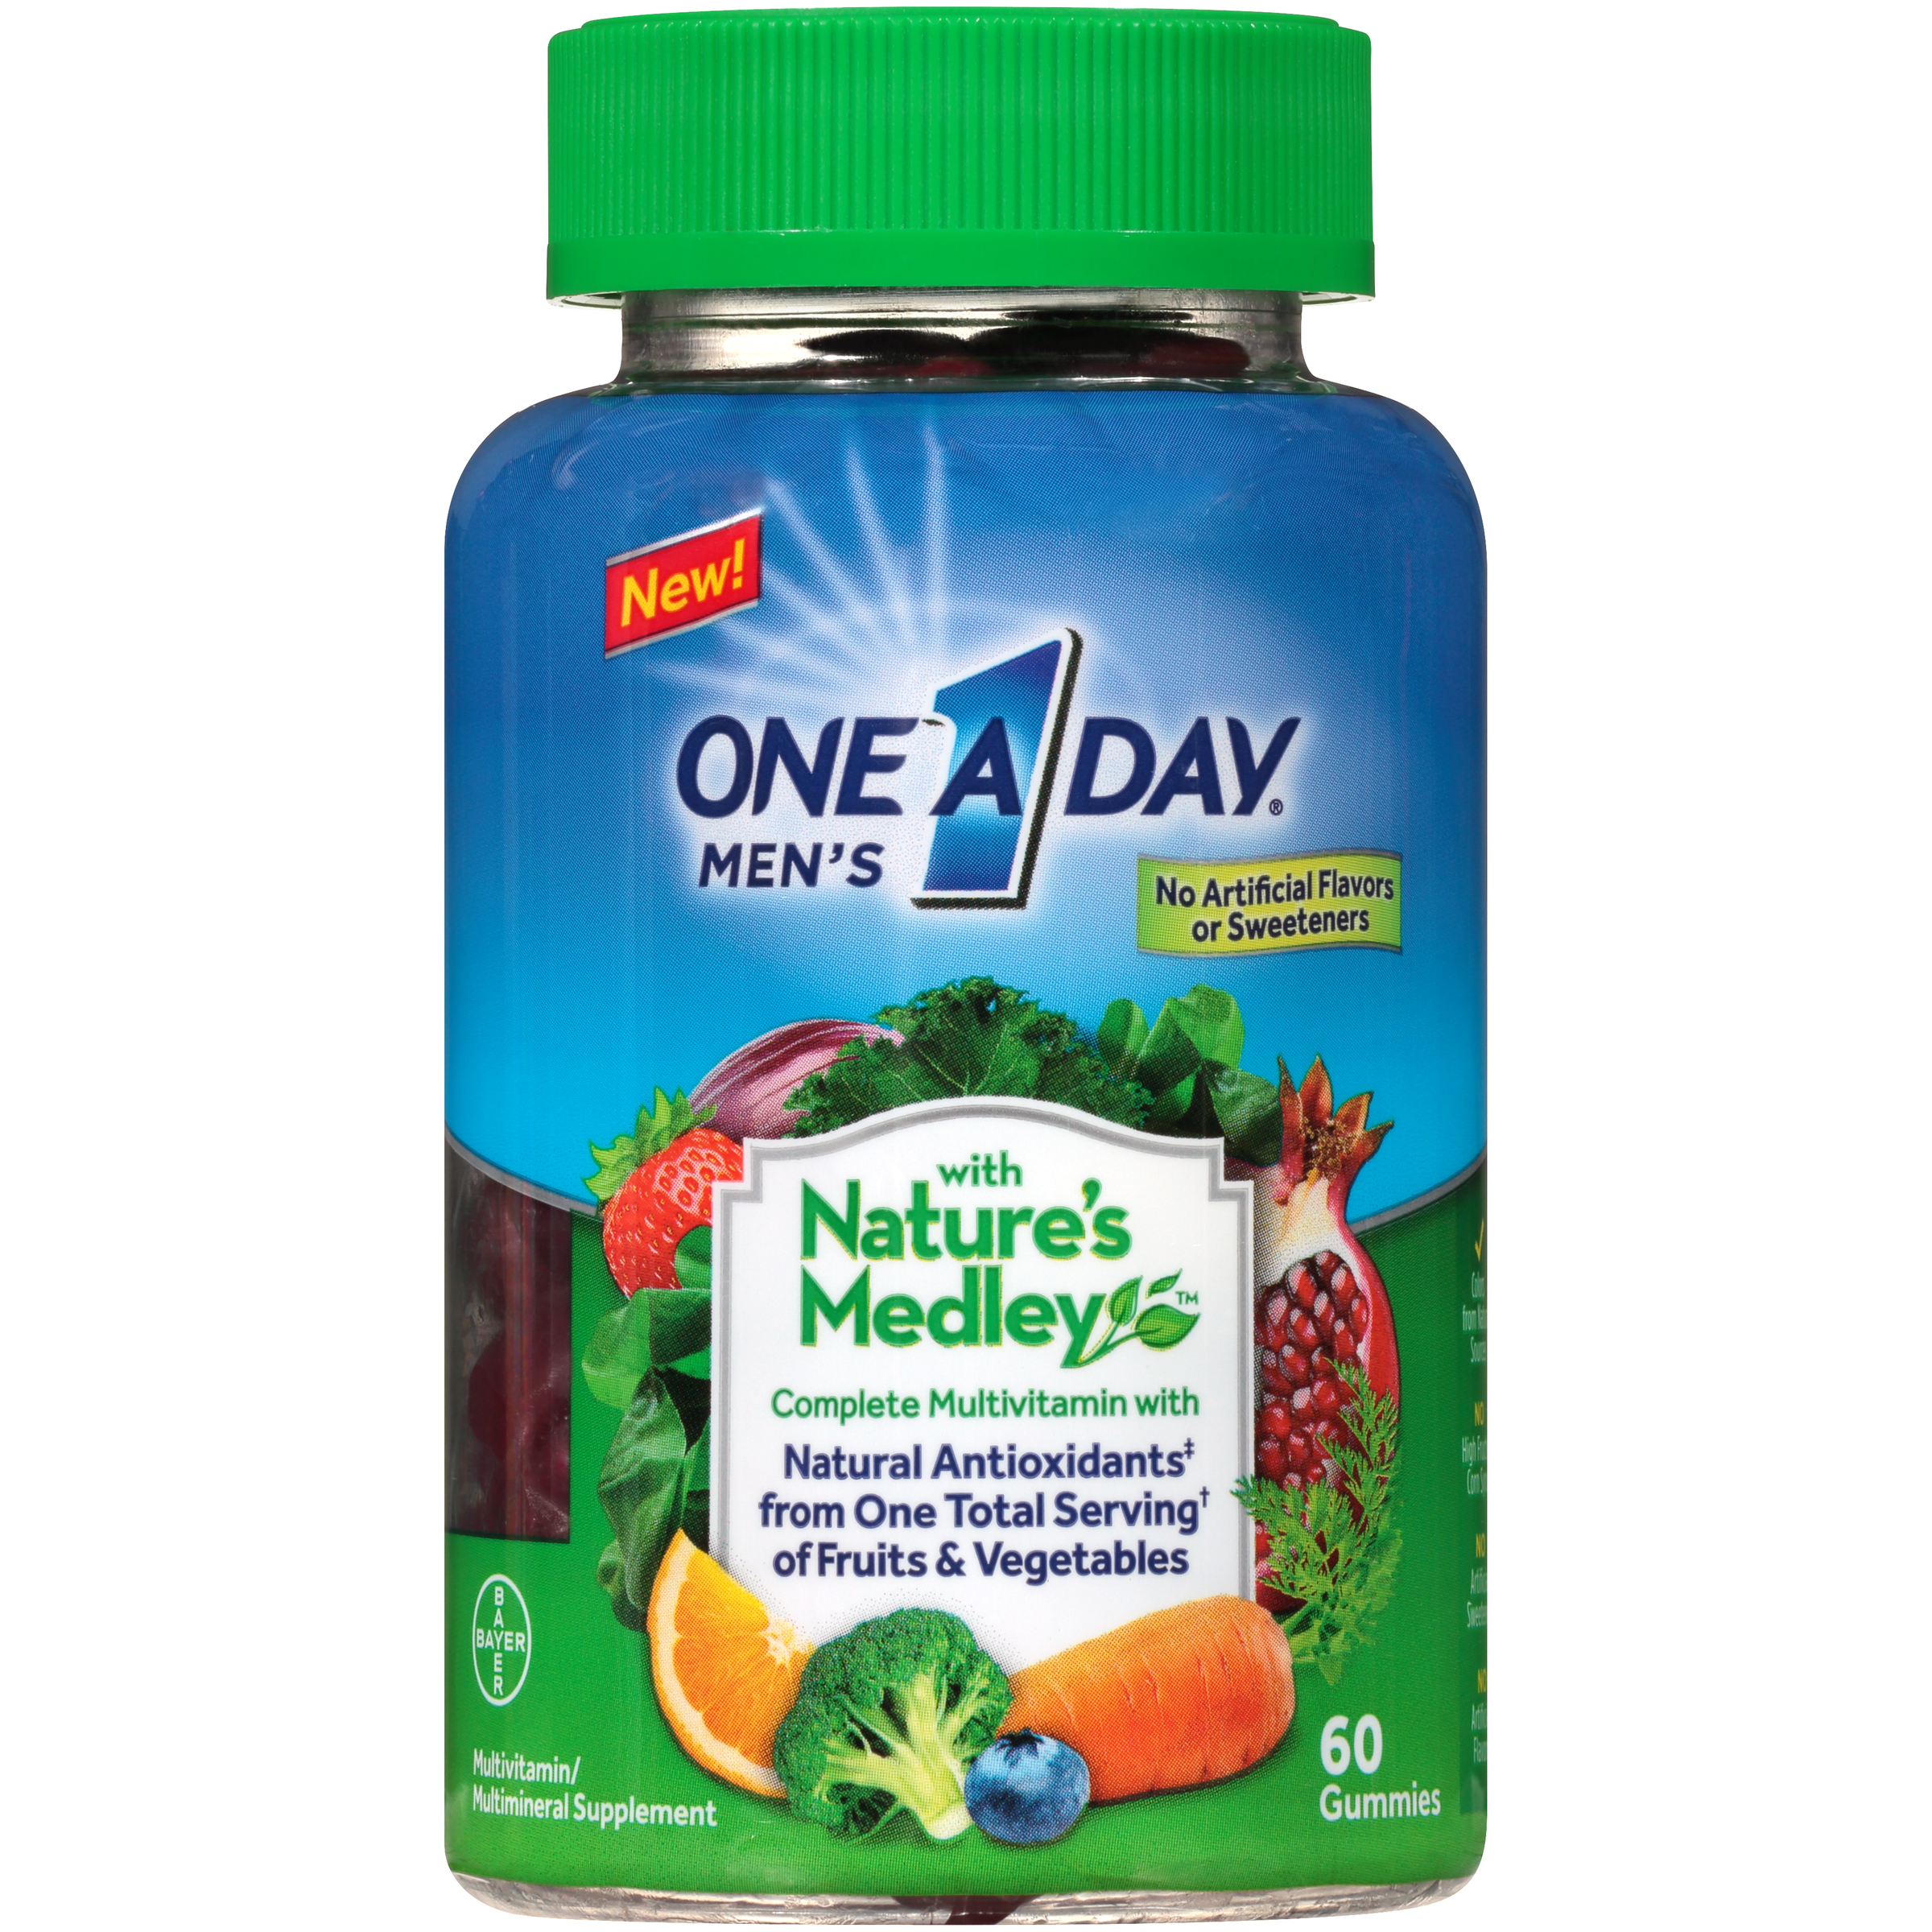 One A Day Men's with Nature's Medley Multivitamin Gummies, 60 Count